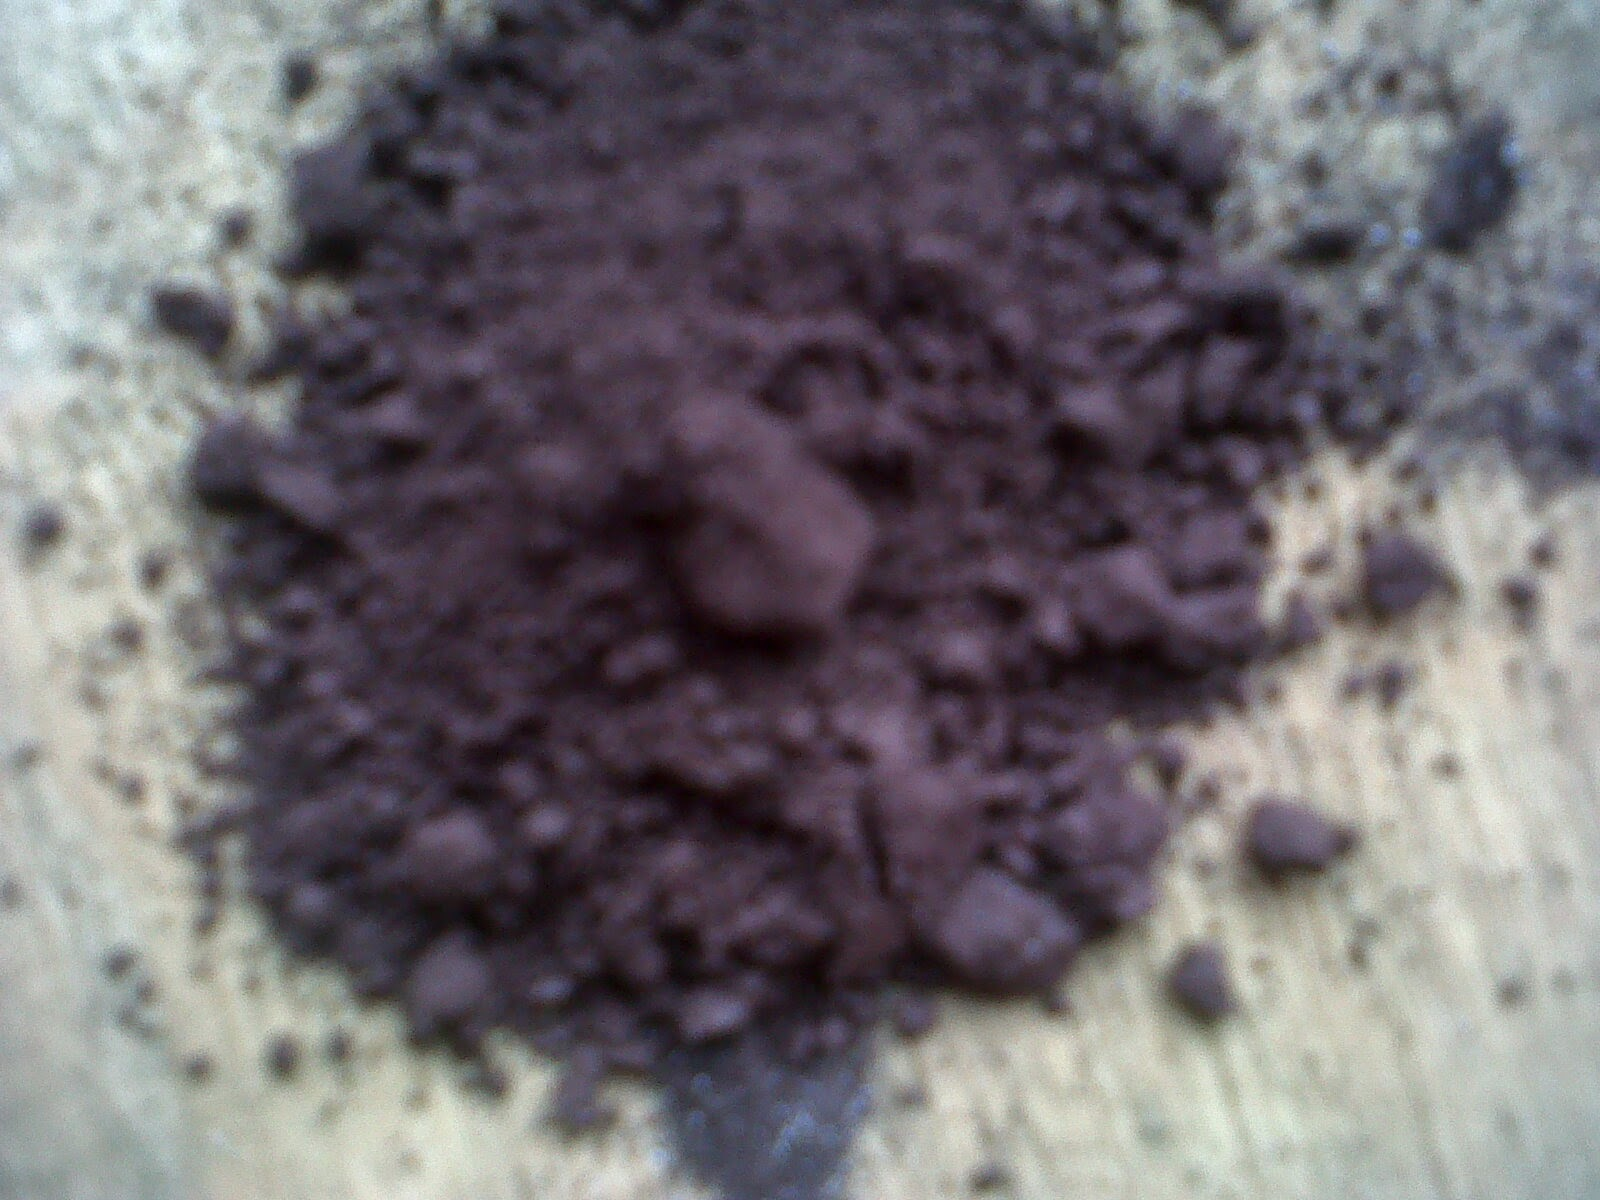 Hematite iron ore high density, Hematite iron ore of high specific gravity